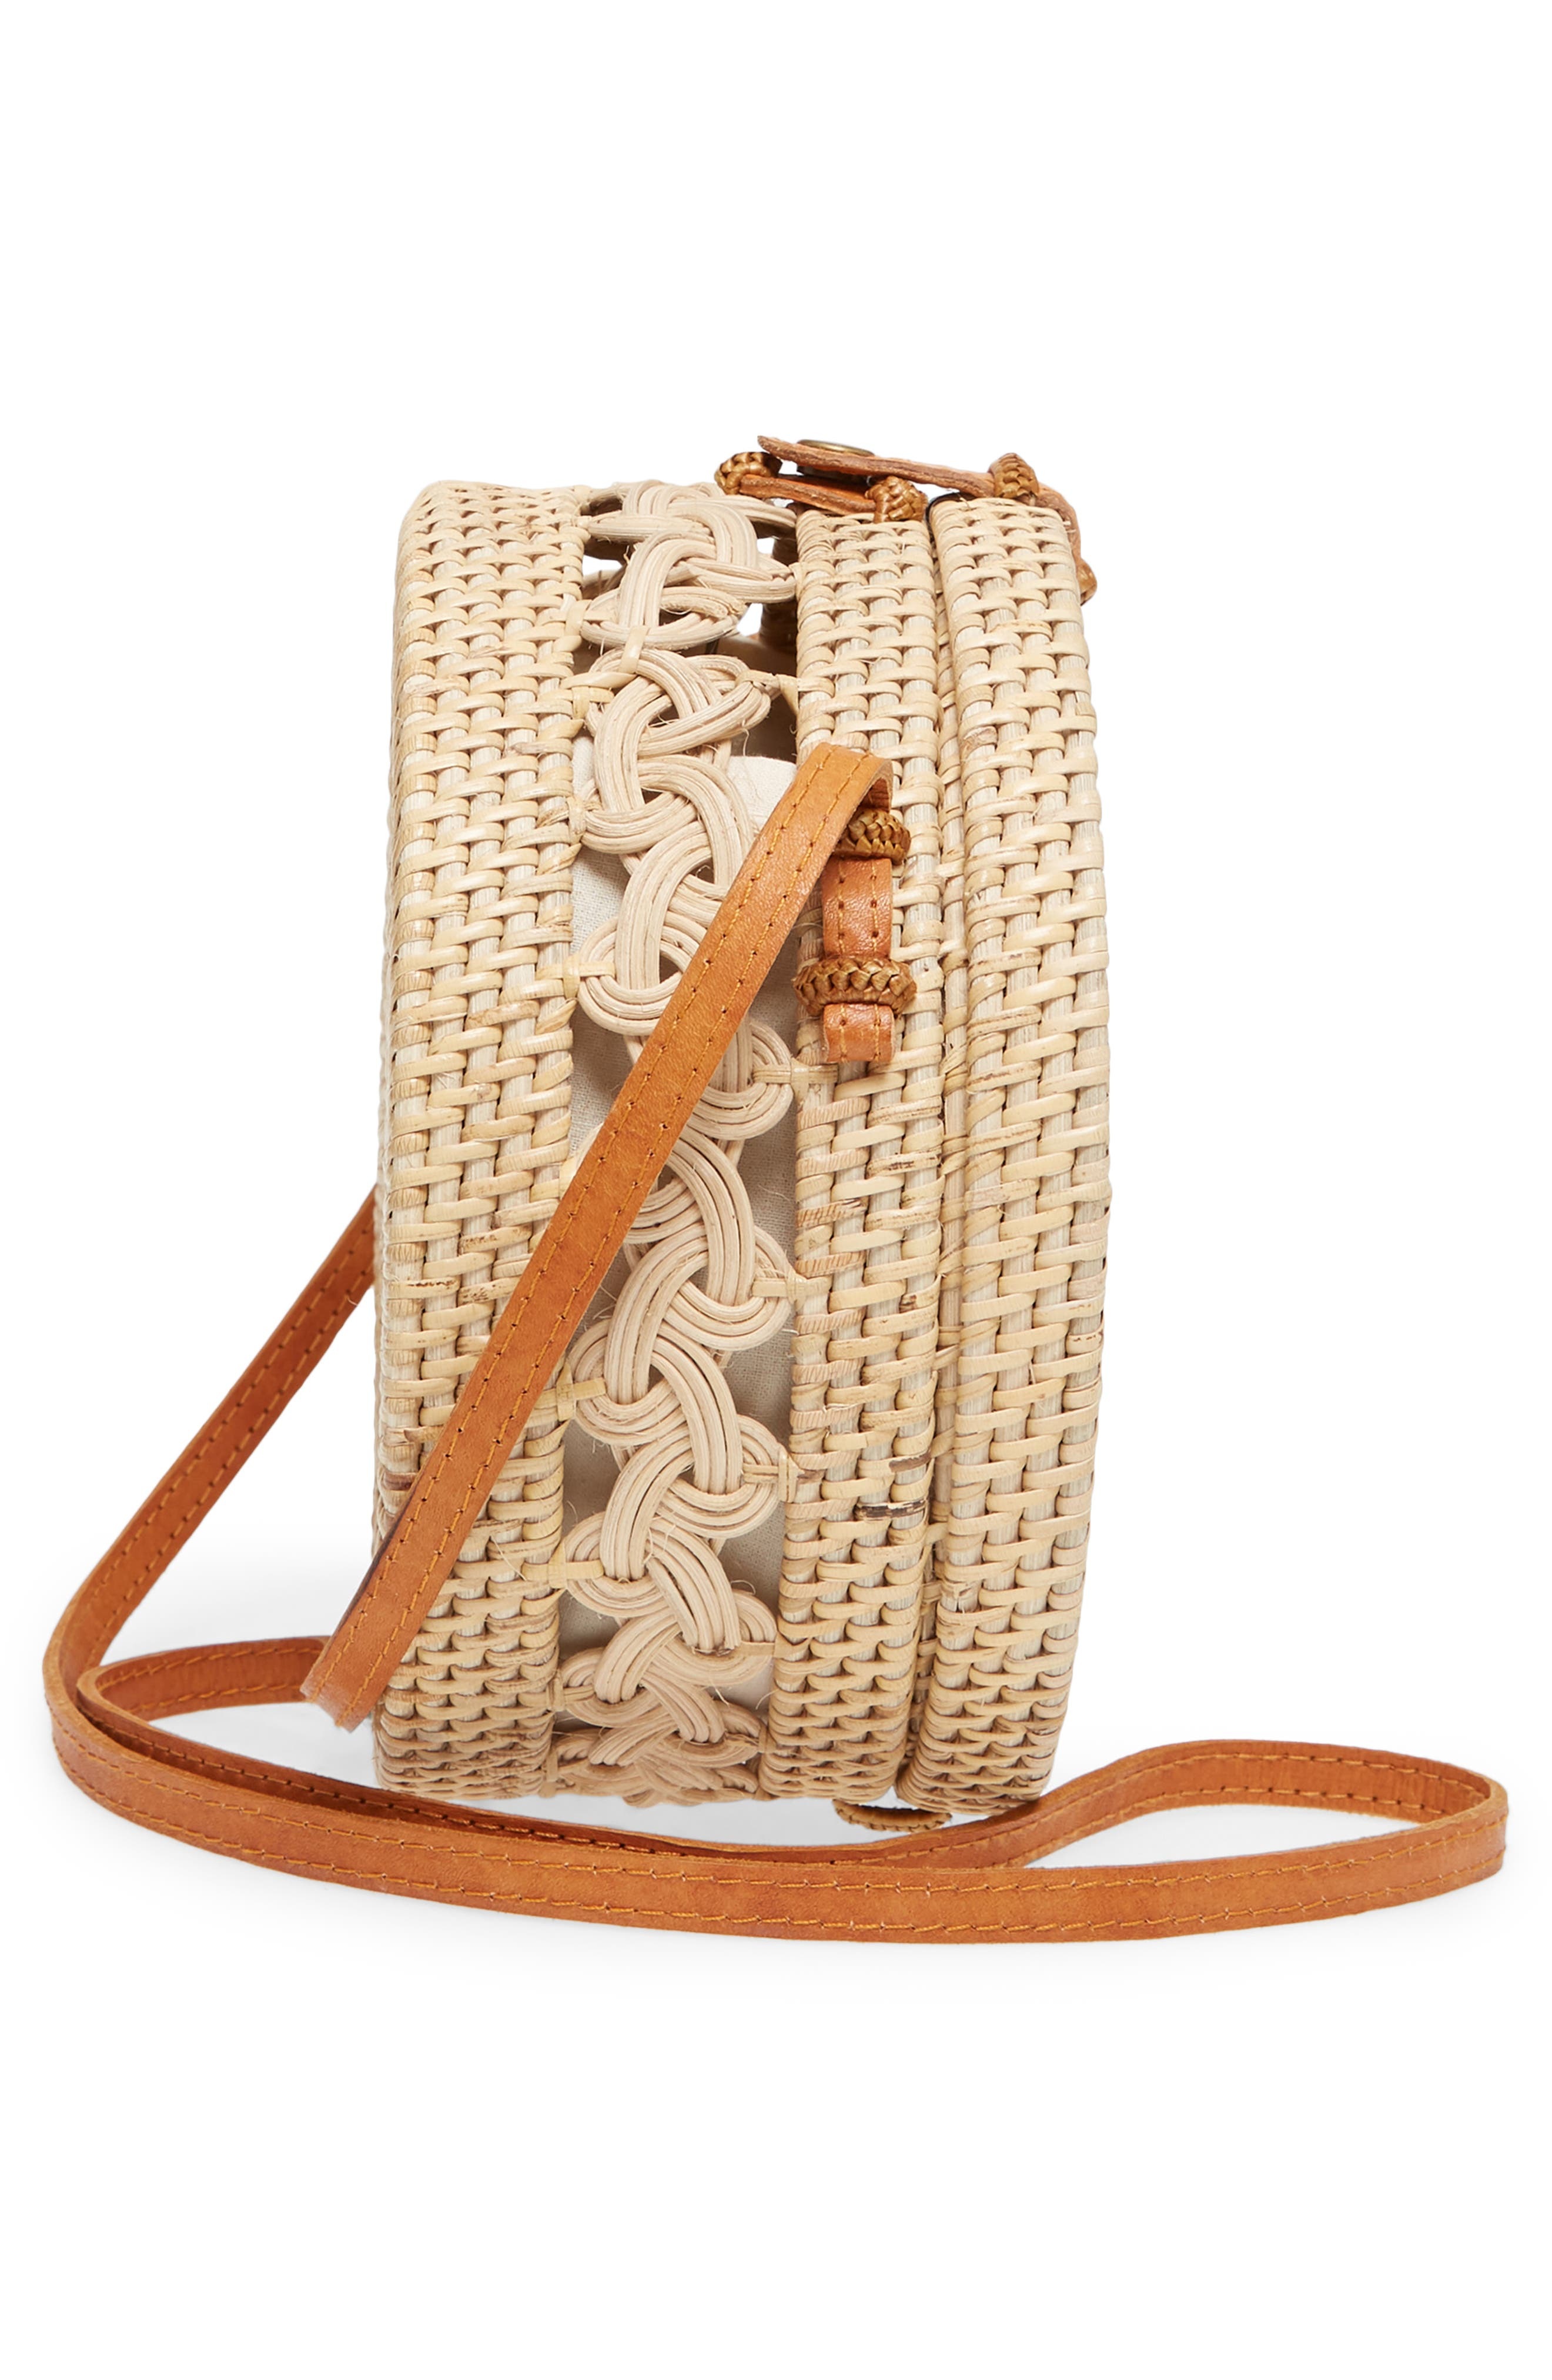 Woven Rattan Circle Crossbody Bag,                             Alternate thumbnail 5, color,                             LIGHTER TAN/ NATURAL